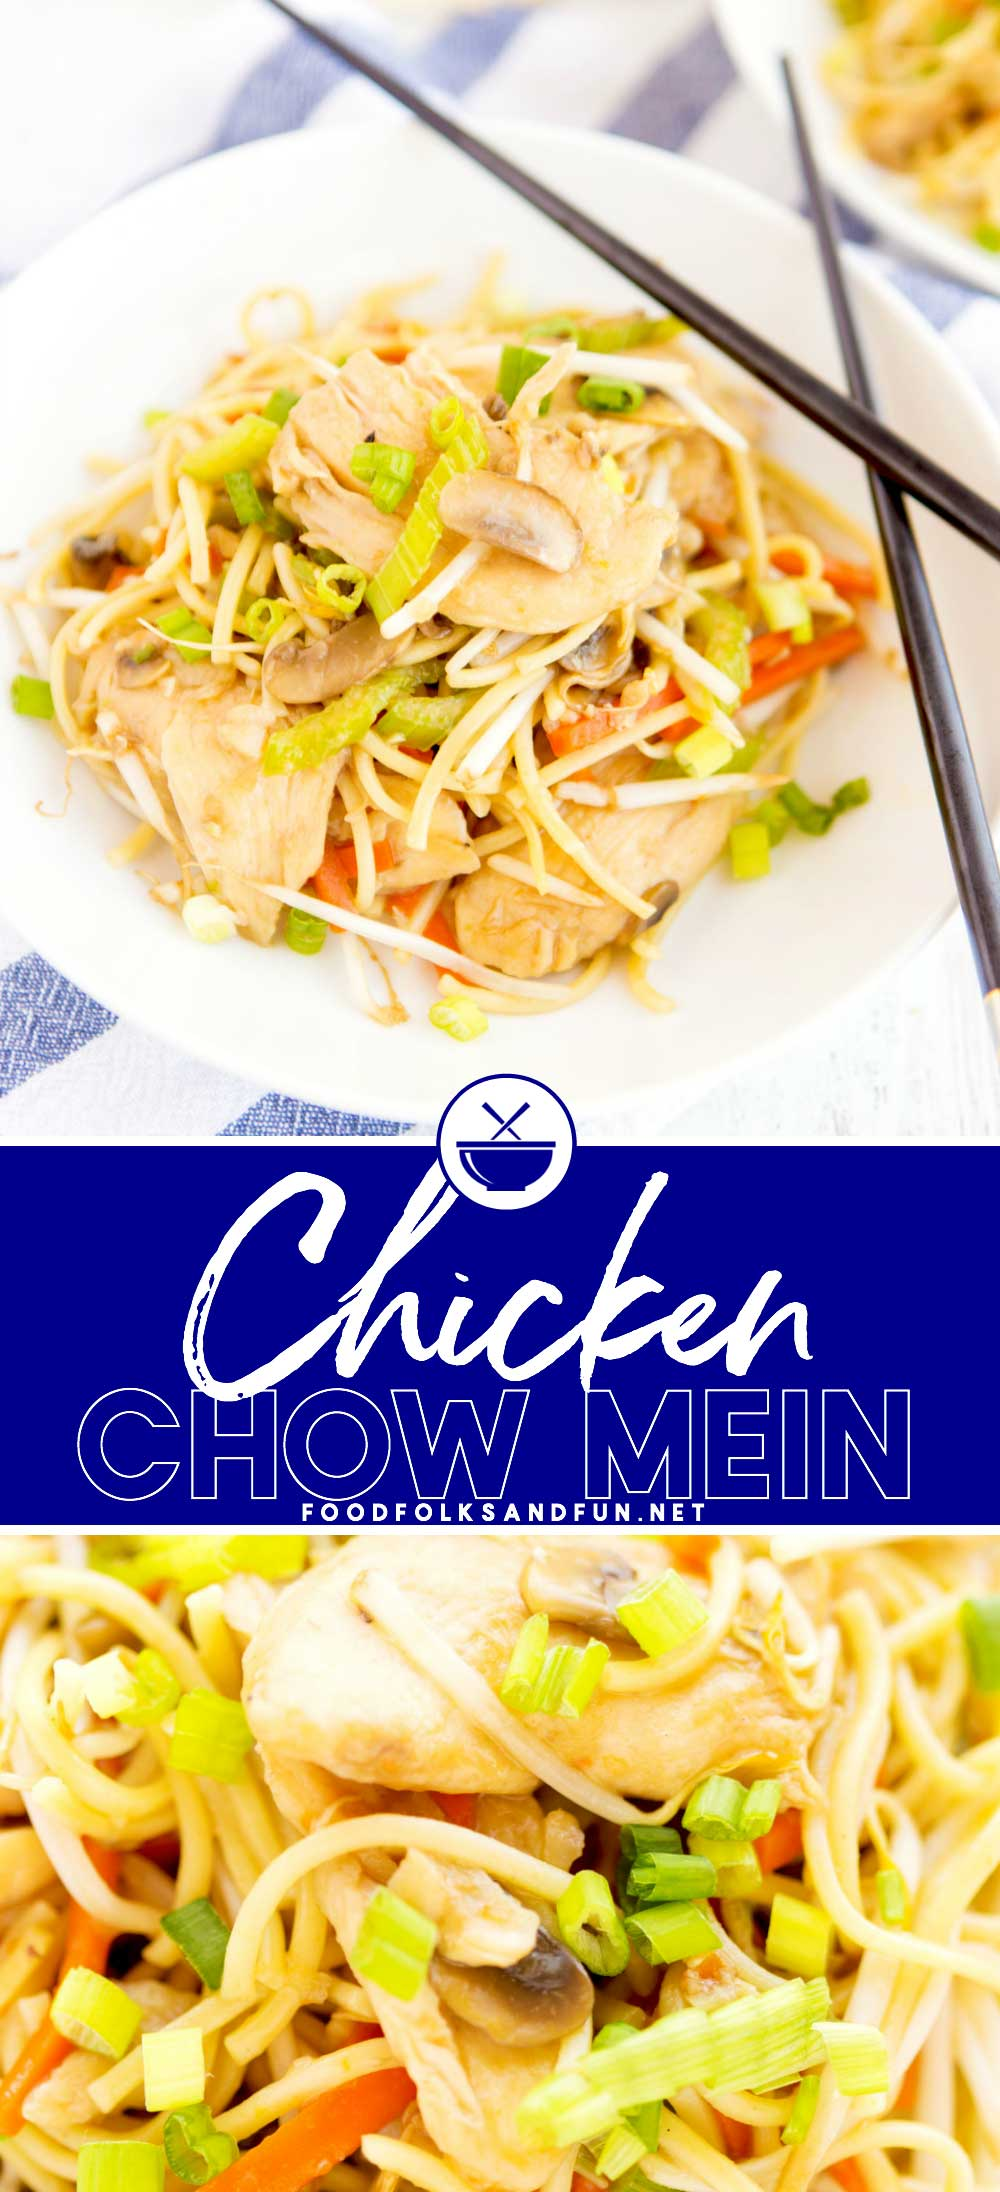 ThisChicken Chow Mein is an easy, at-home recipe that's better than any Chinese takeout! It's simple and so crave-worthy! via @foodfolksandfun